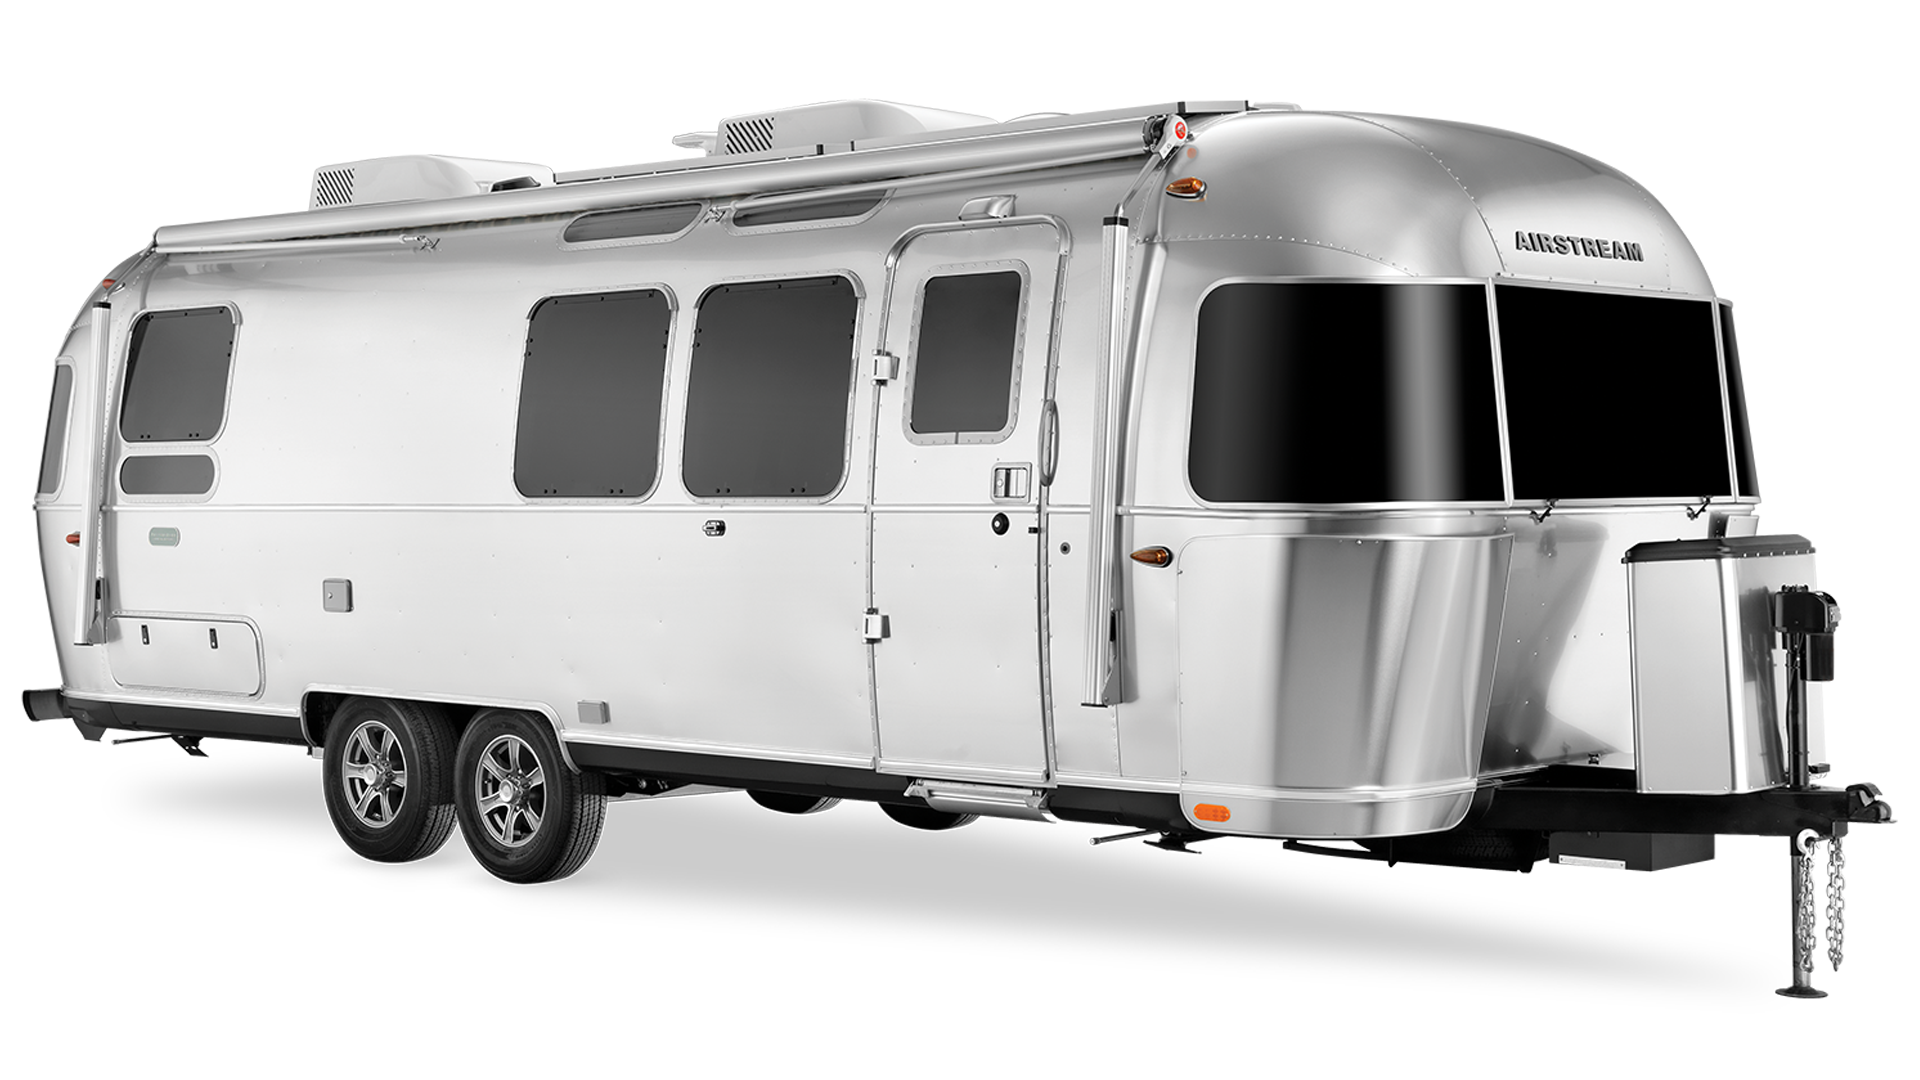 Airstream-X-Pottery-Barn-Exterior-Twin-3-QTR-View